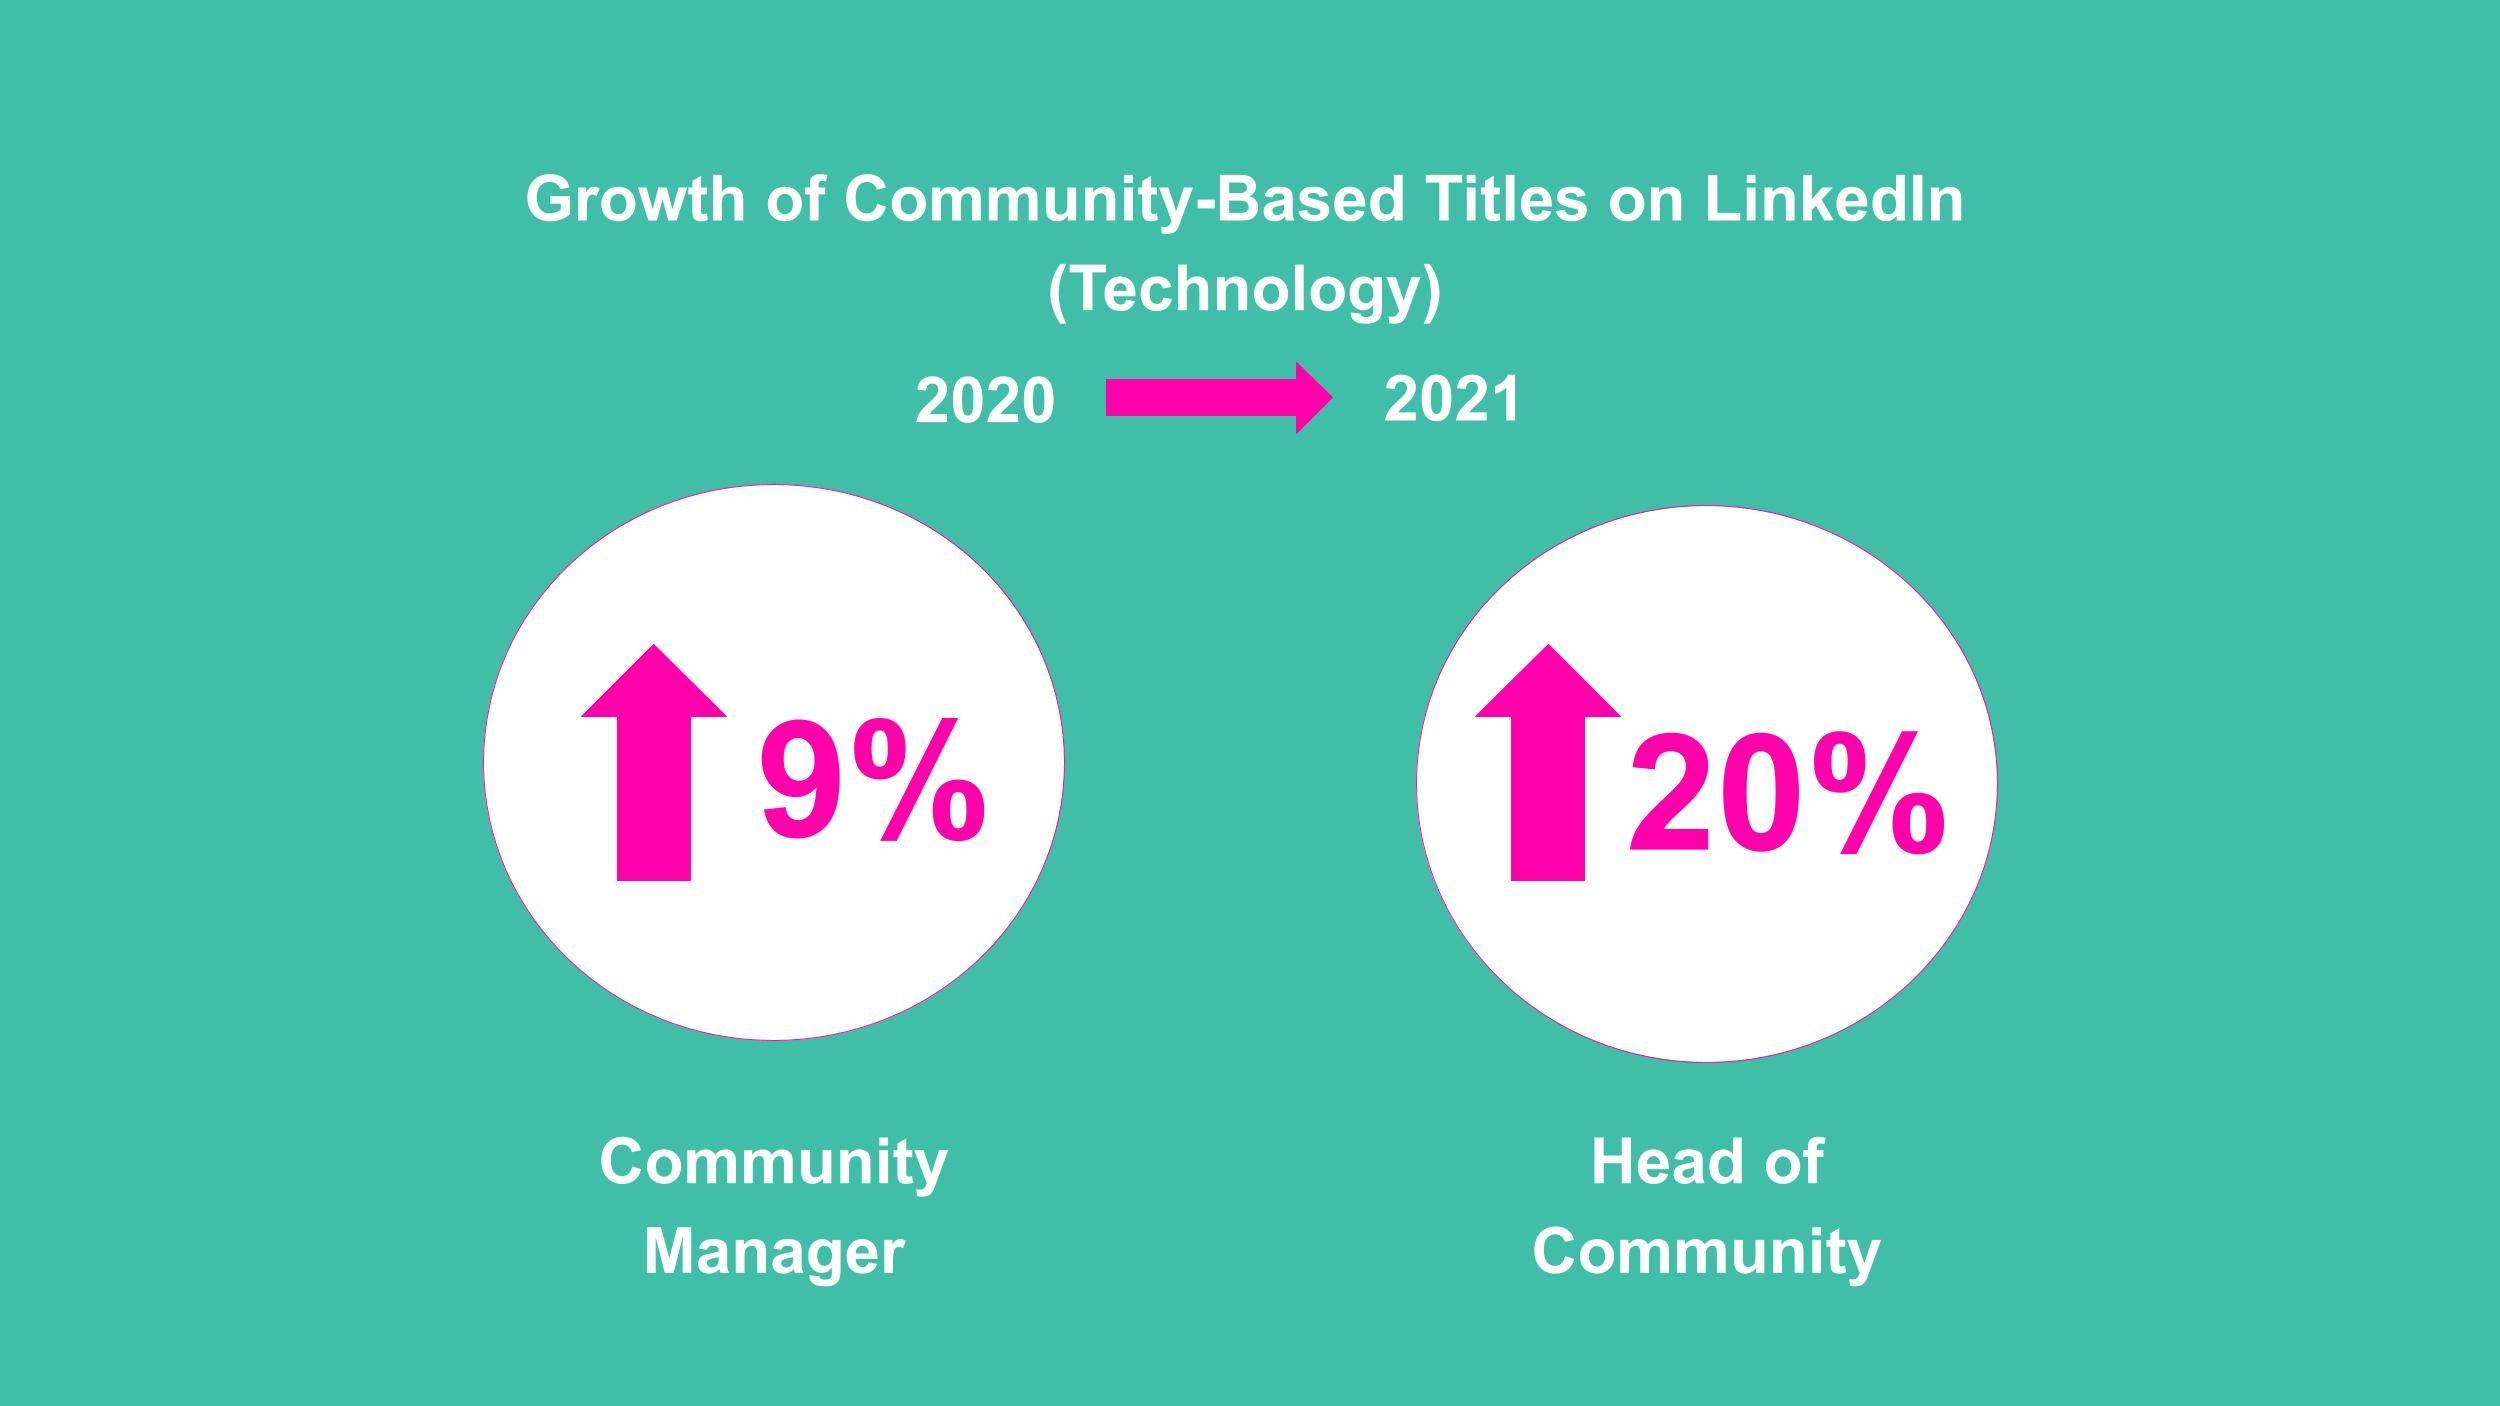 Growth of Community-Based Titles on LinkedIn(Technology)